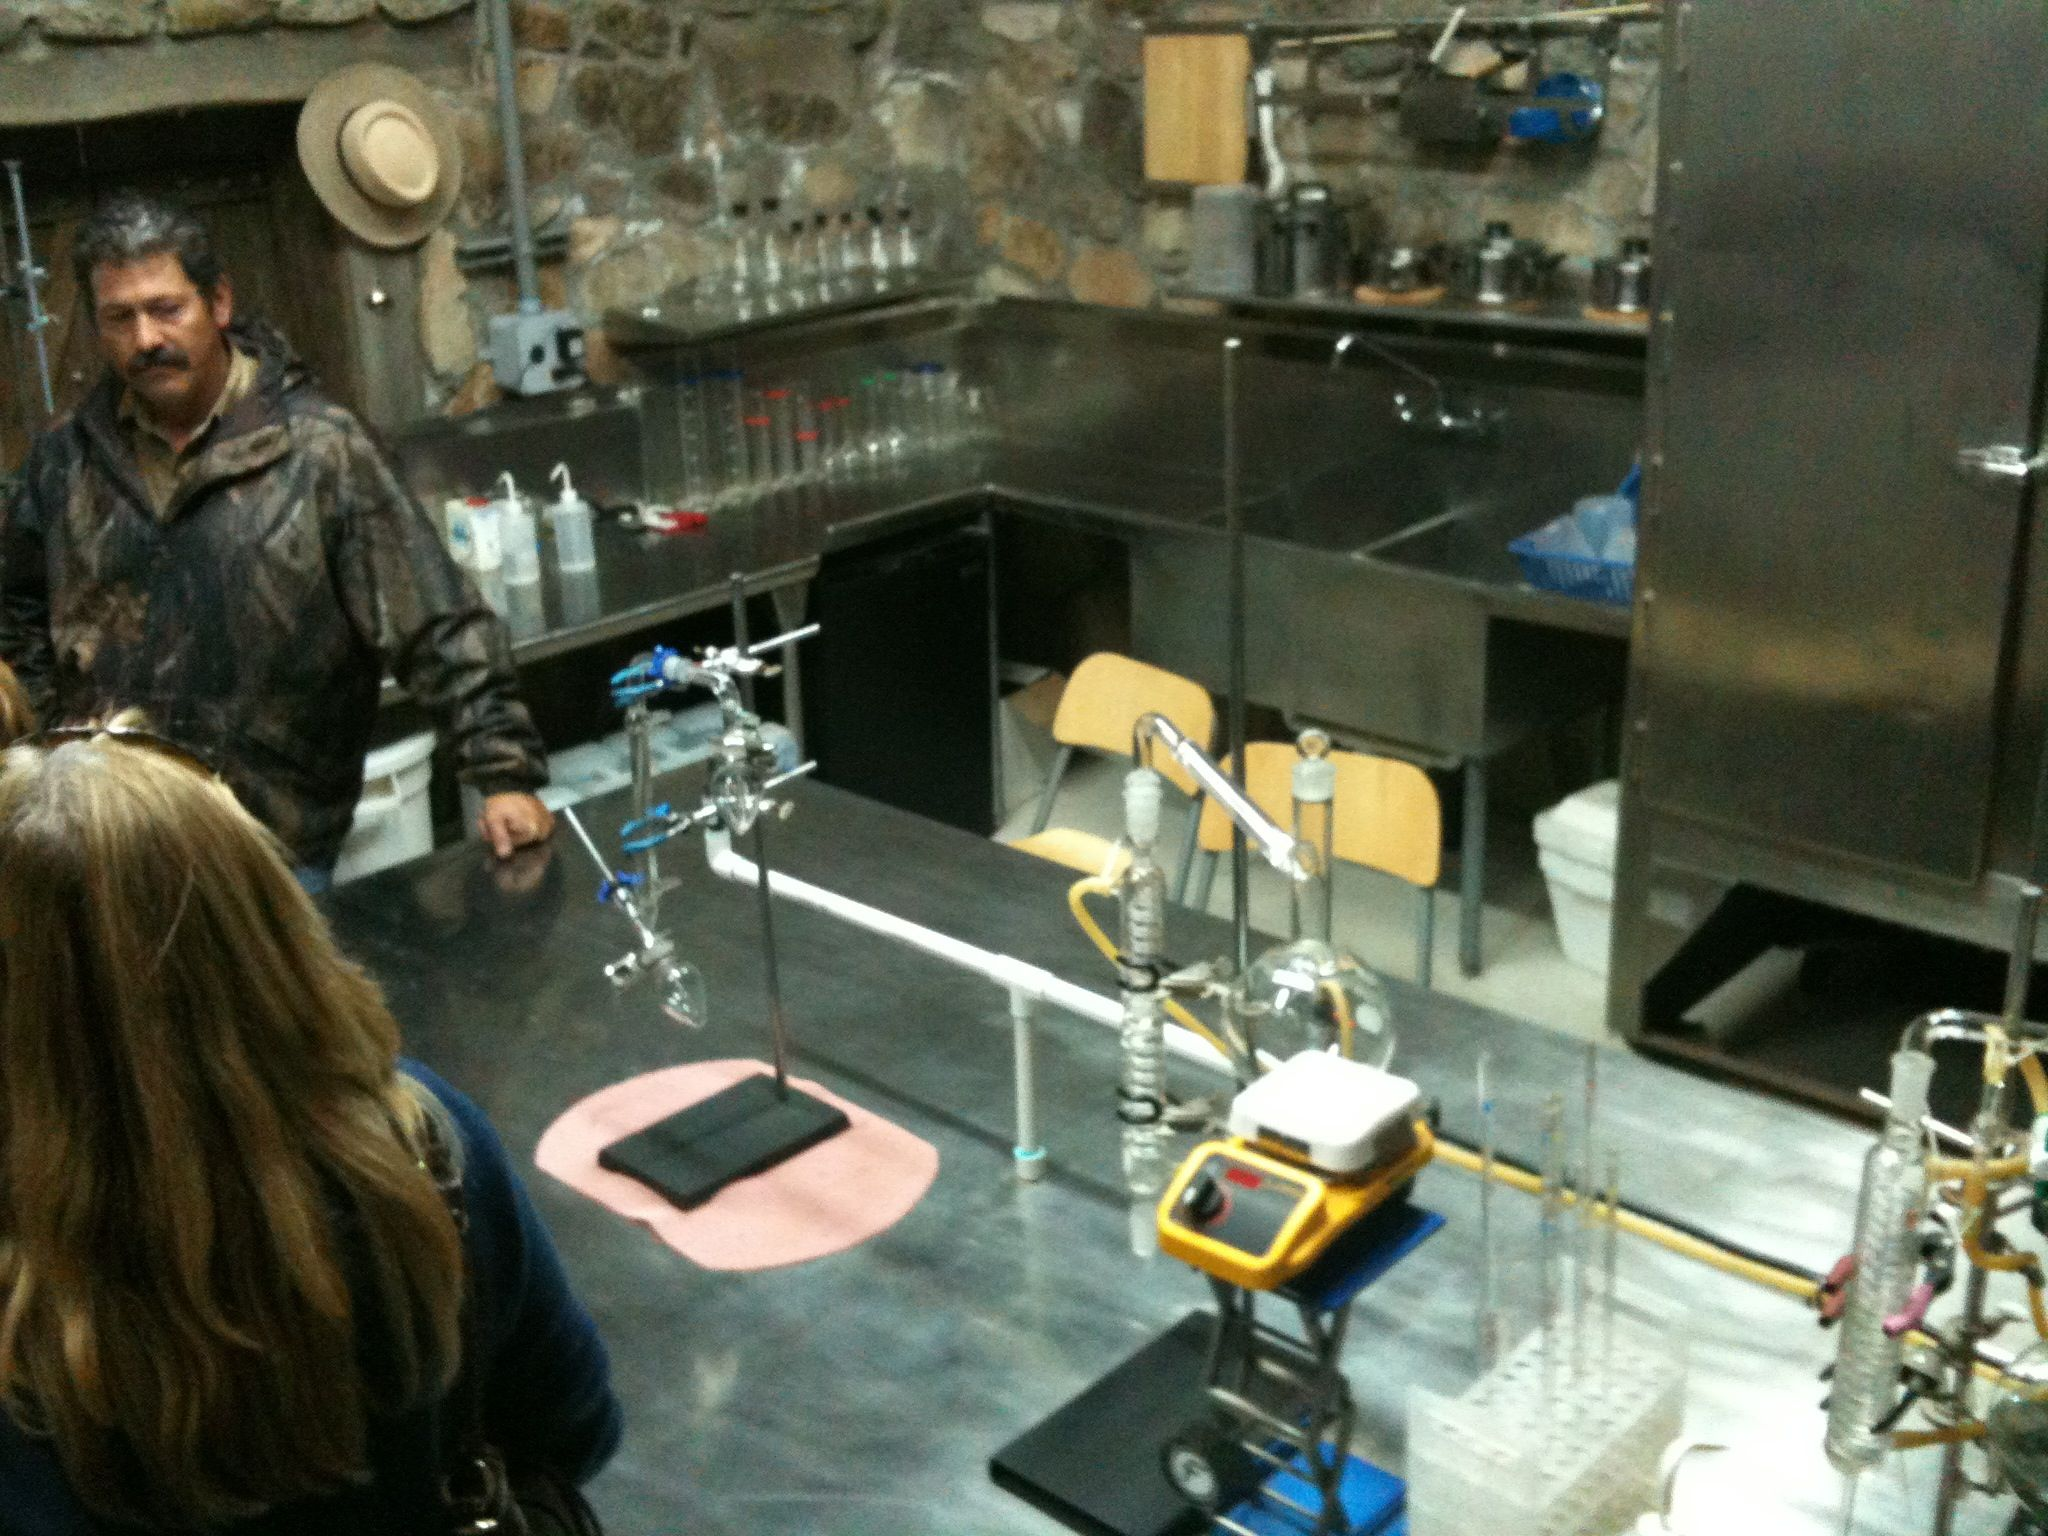 Lab at Vinas de Garza